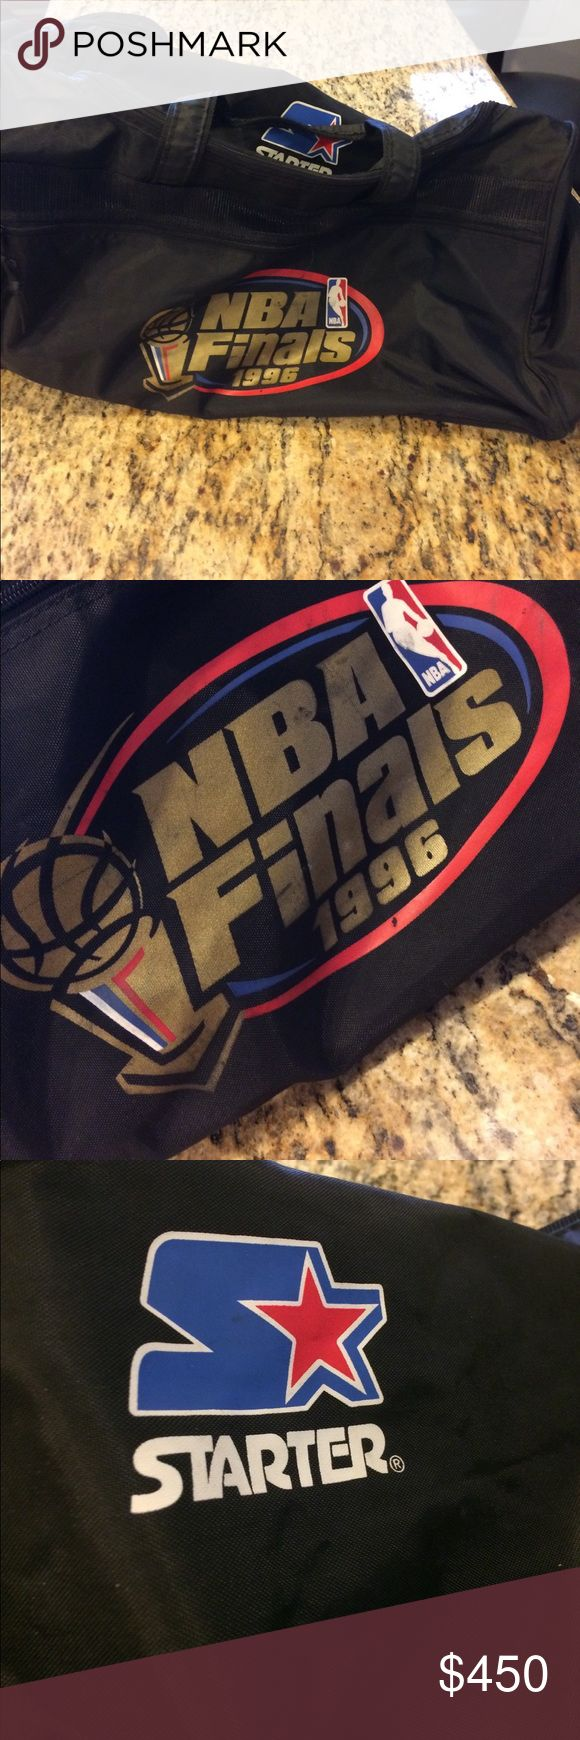 1996 NBA FINALS Starter Duffel Bag Great condition for a duffel that's from 1996. Tiny flaws that are posted in the pic. Pockets are posted in the pics. SERIOUS INQUIRIES ONLY Starter Bags Duffel Bags